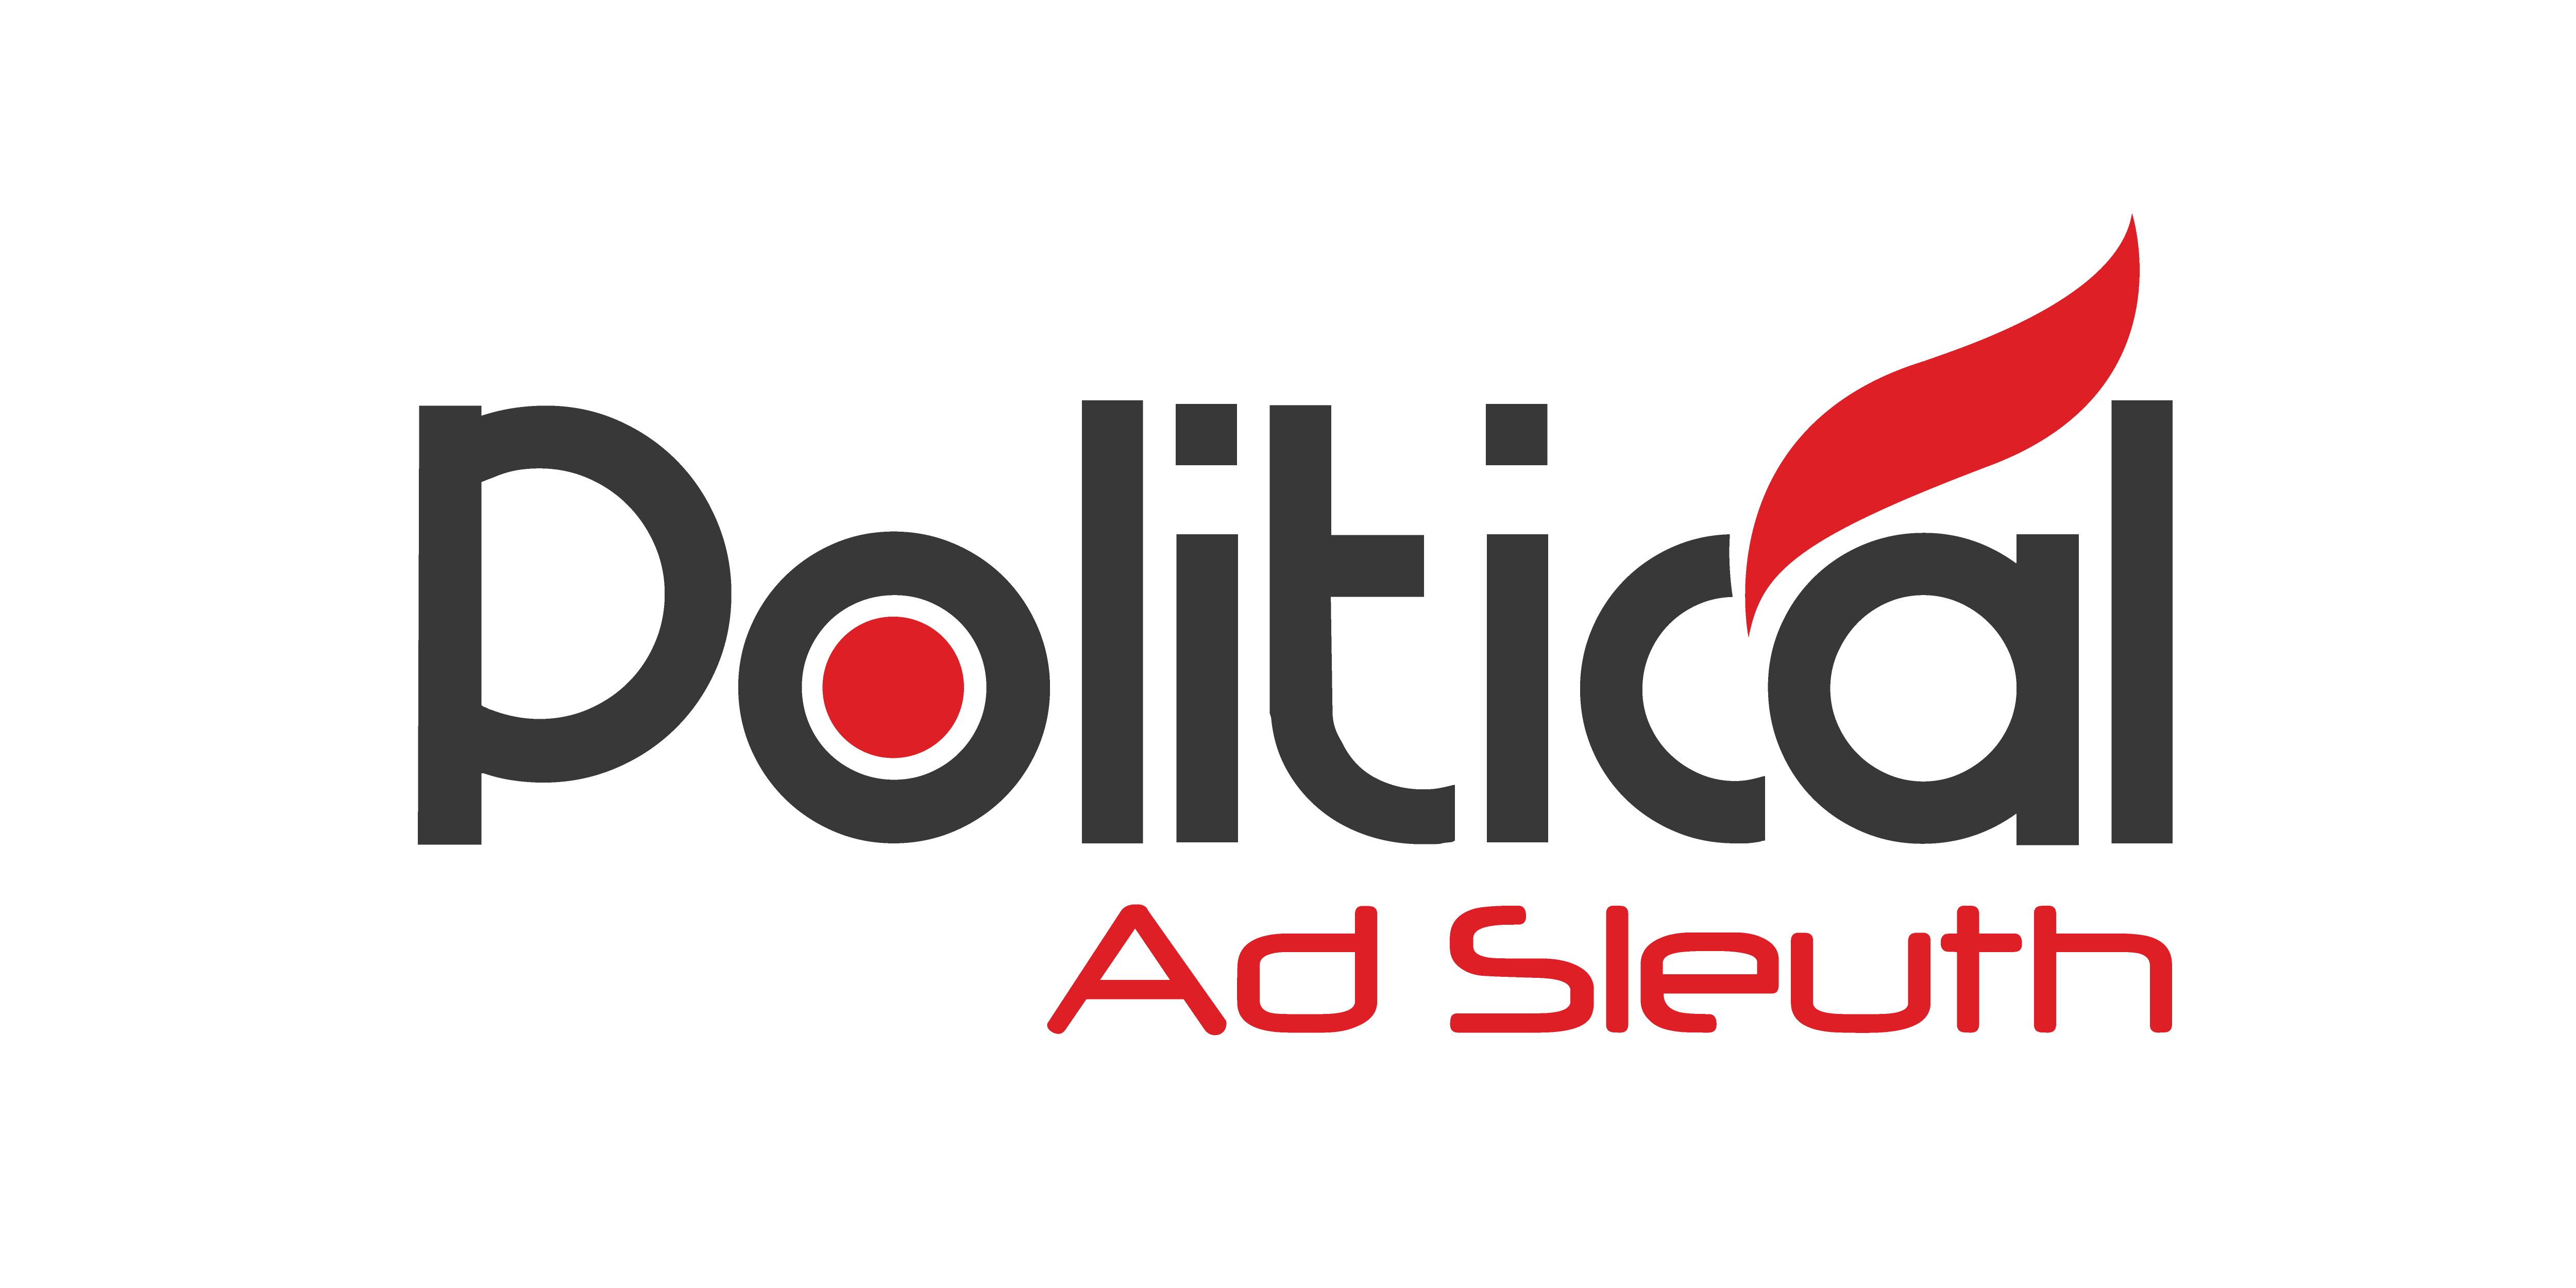 Political Ad Sleuth